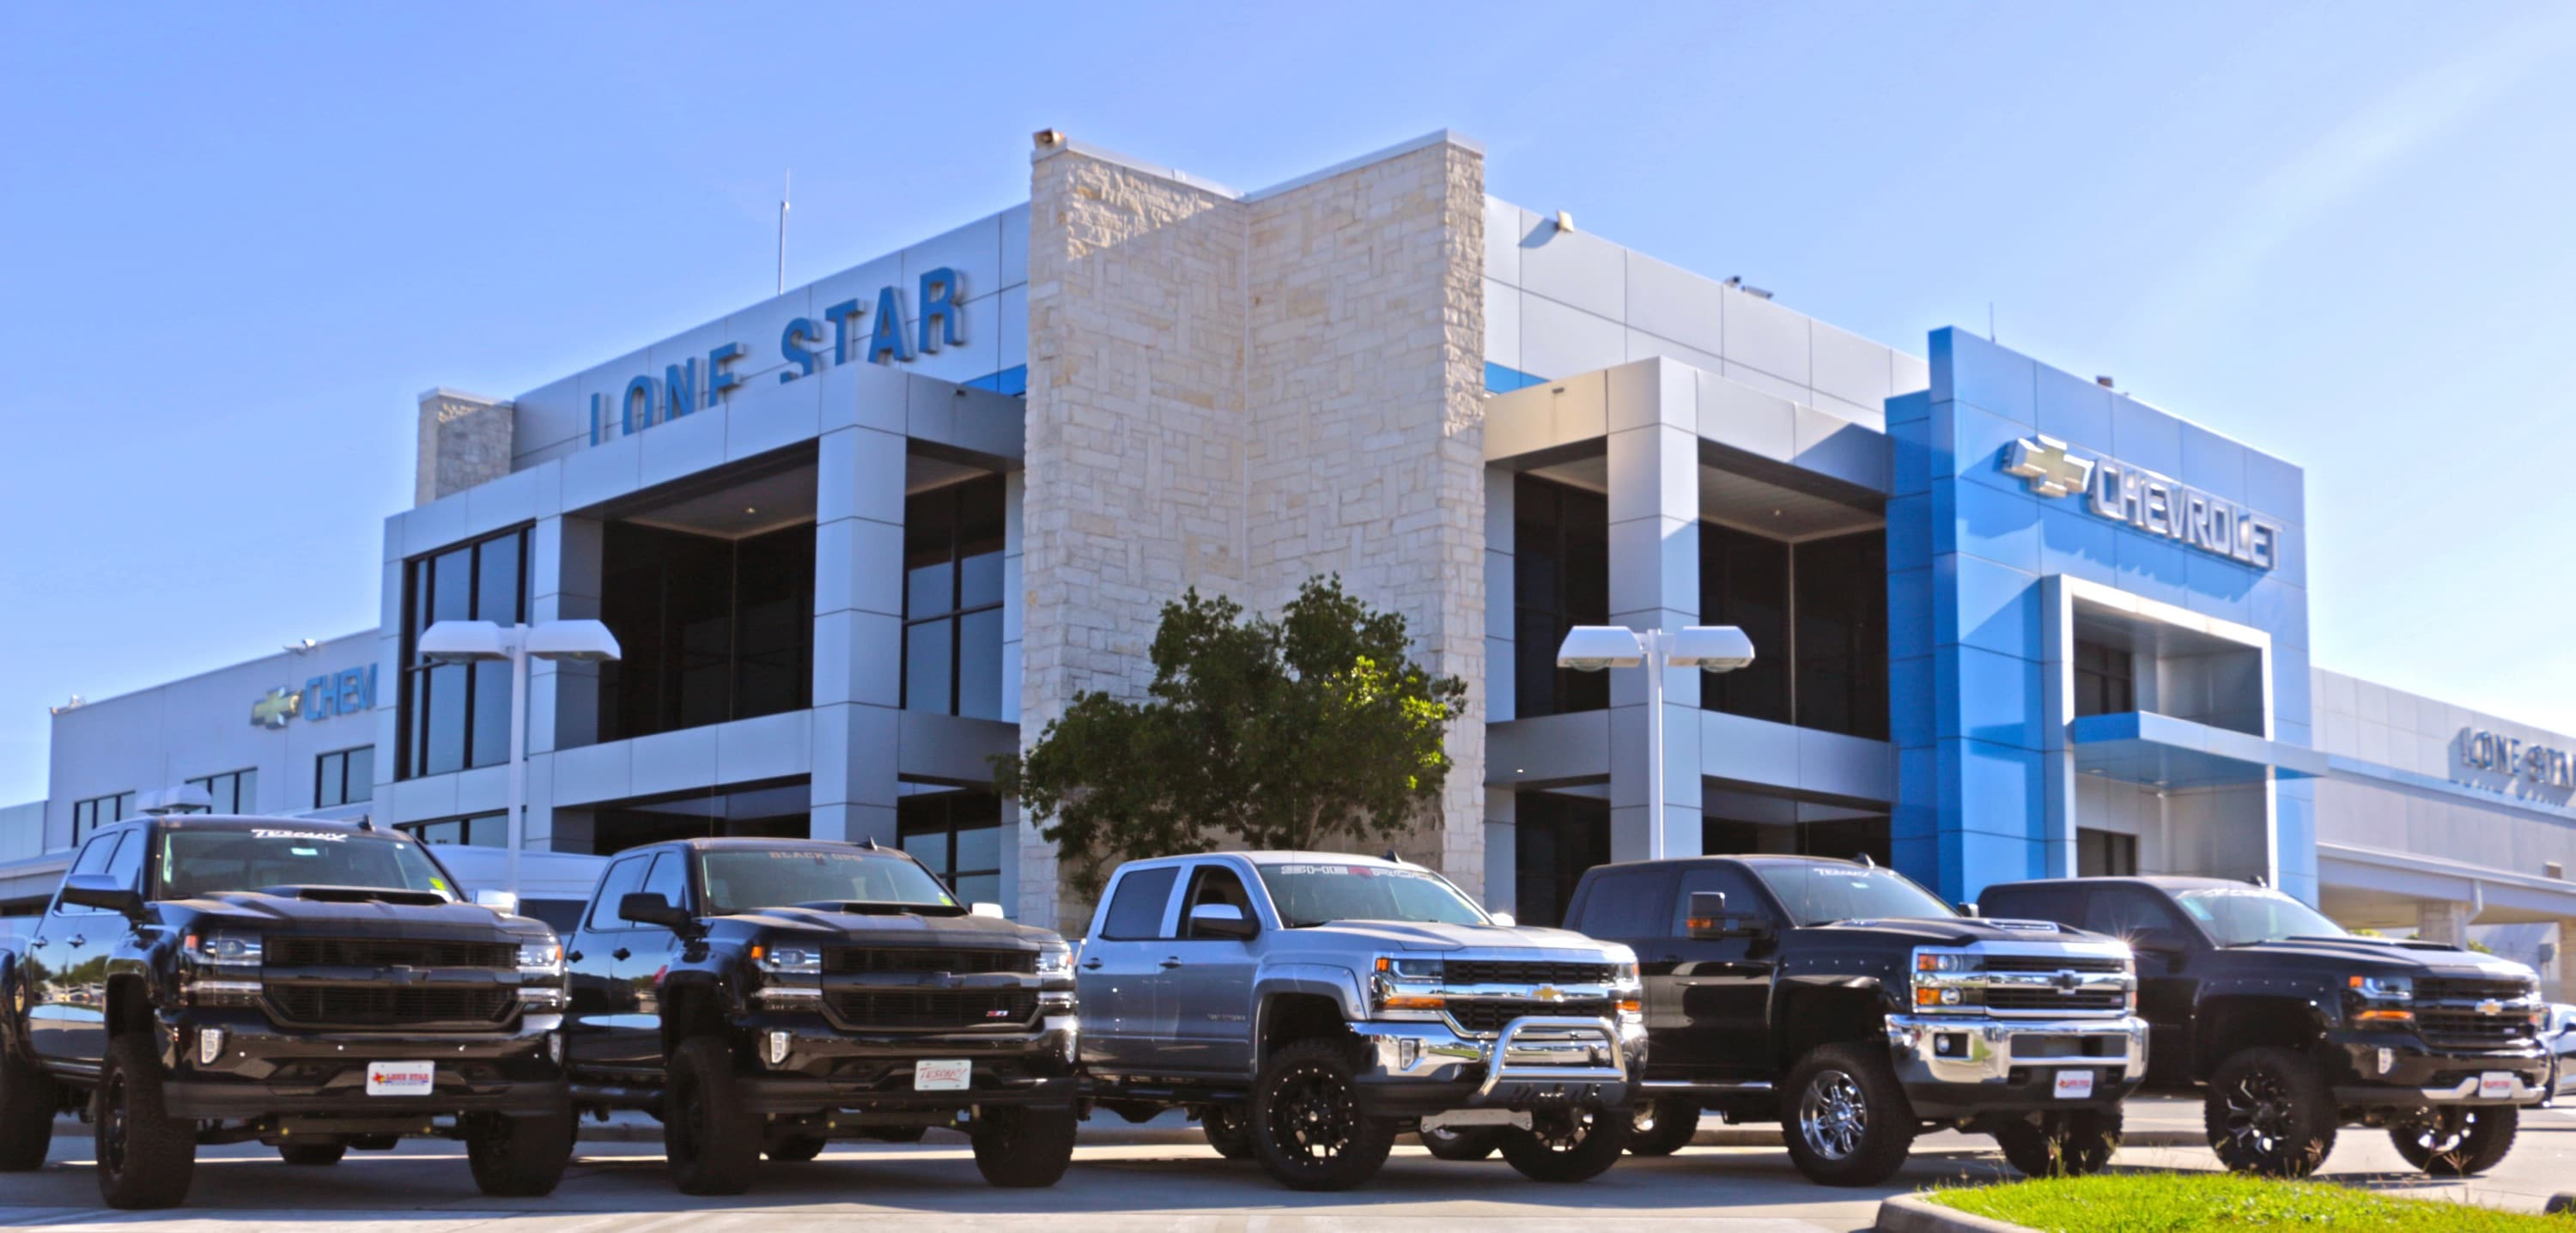 Awesome Lone Star Chevrolet ...